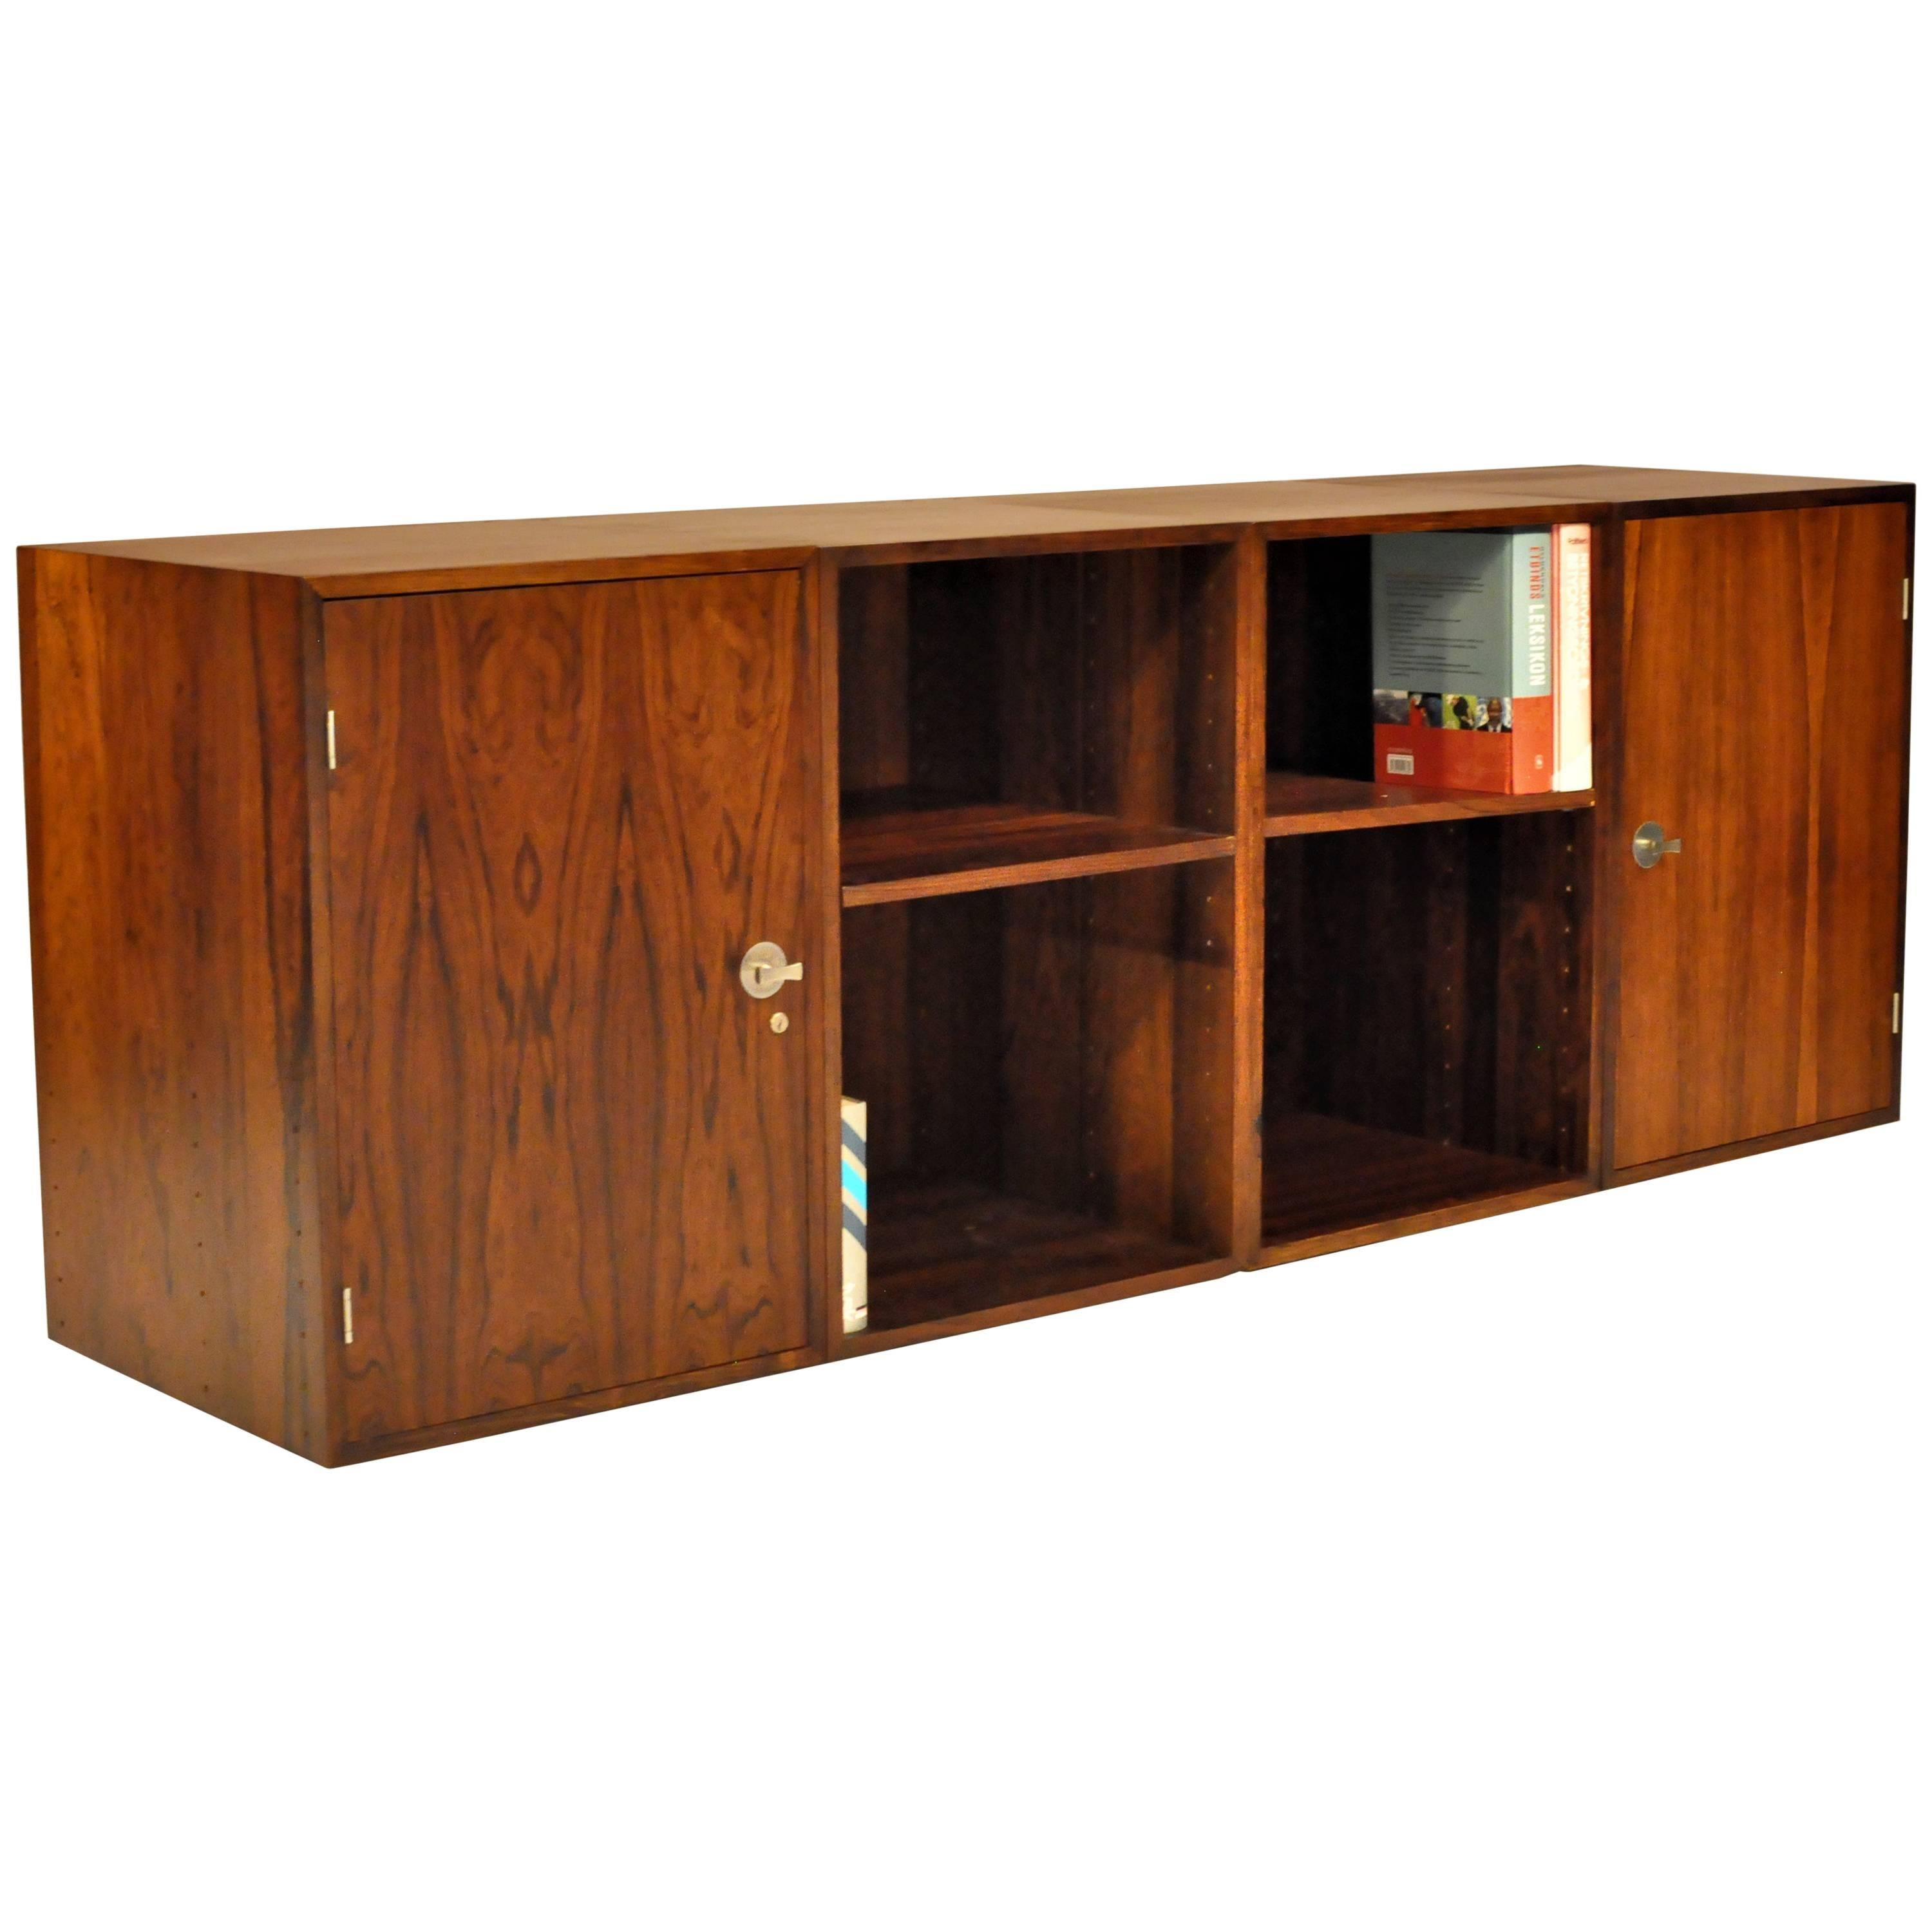 1960s Finn Juhl Rosewood Diplomat Storage Cabinets and Book Cases